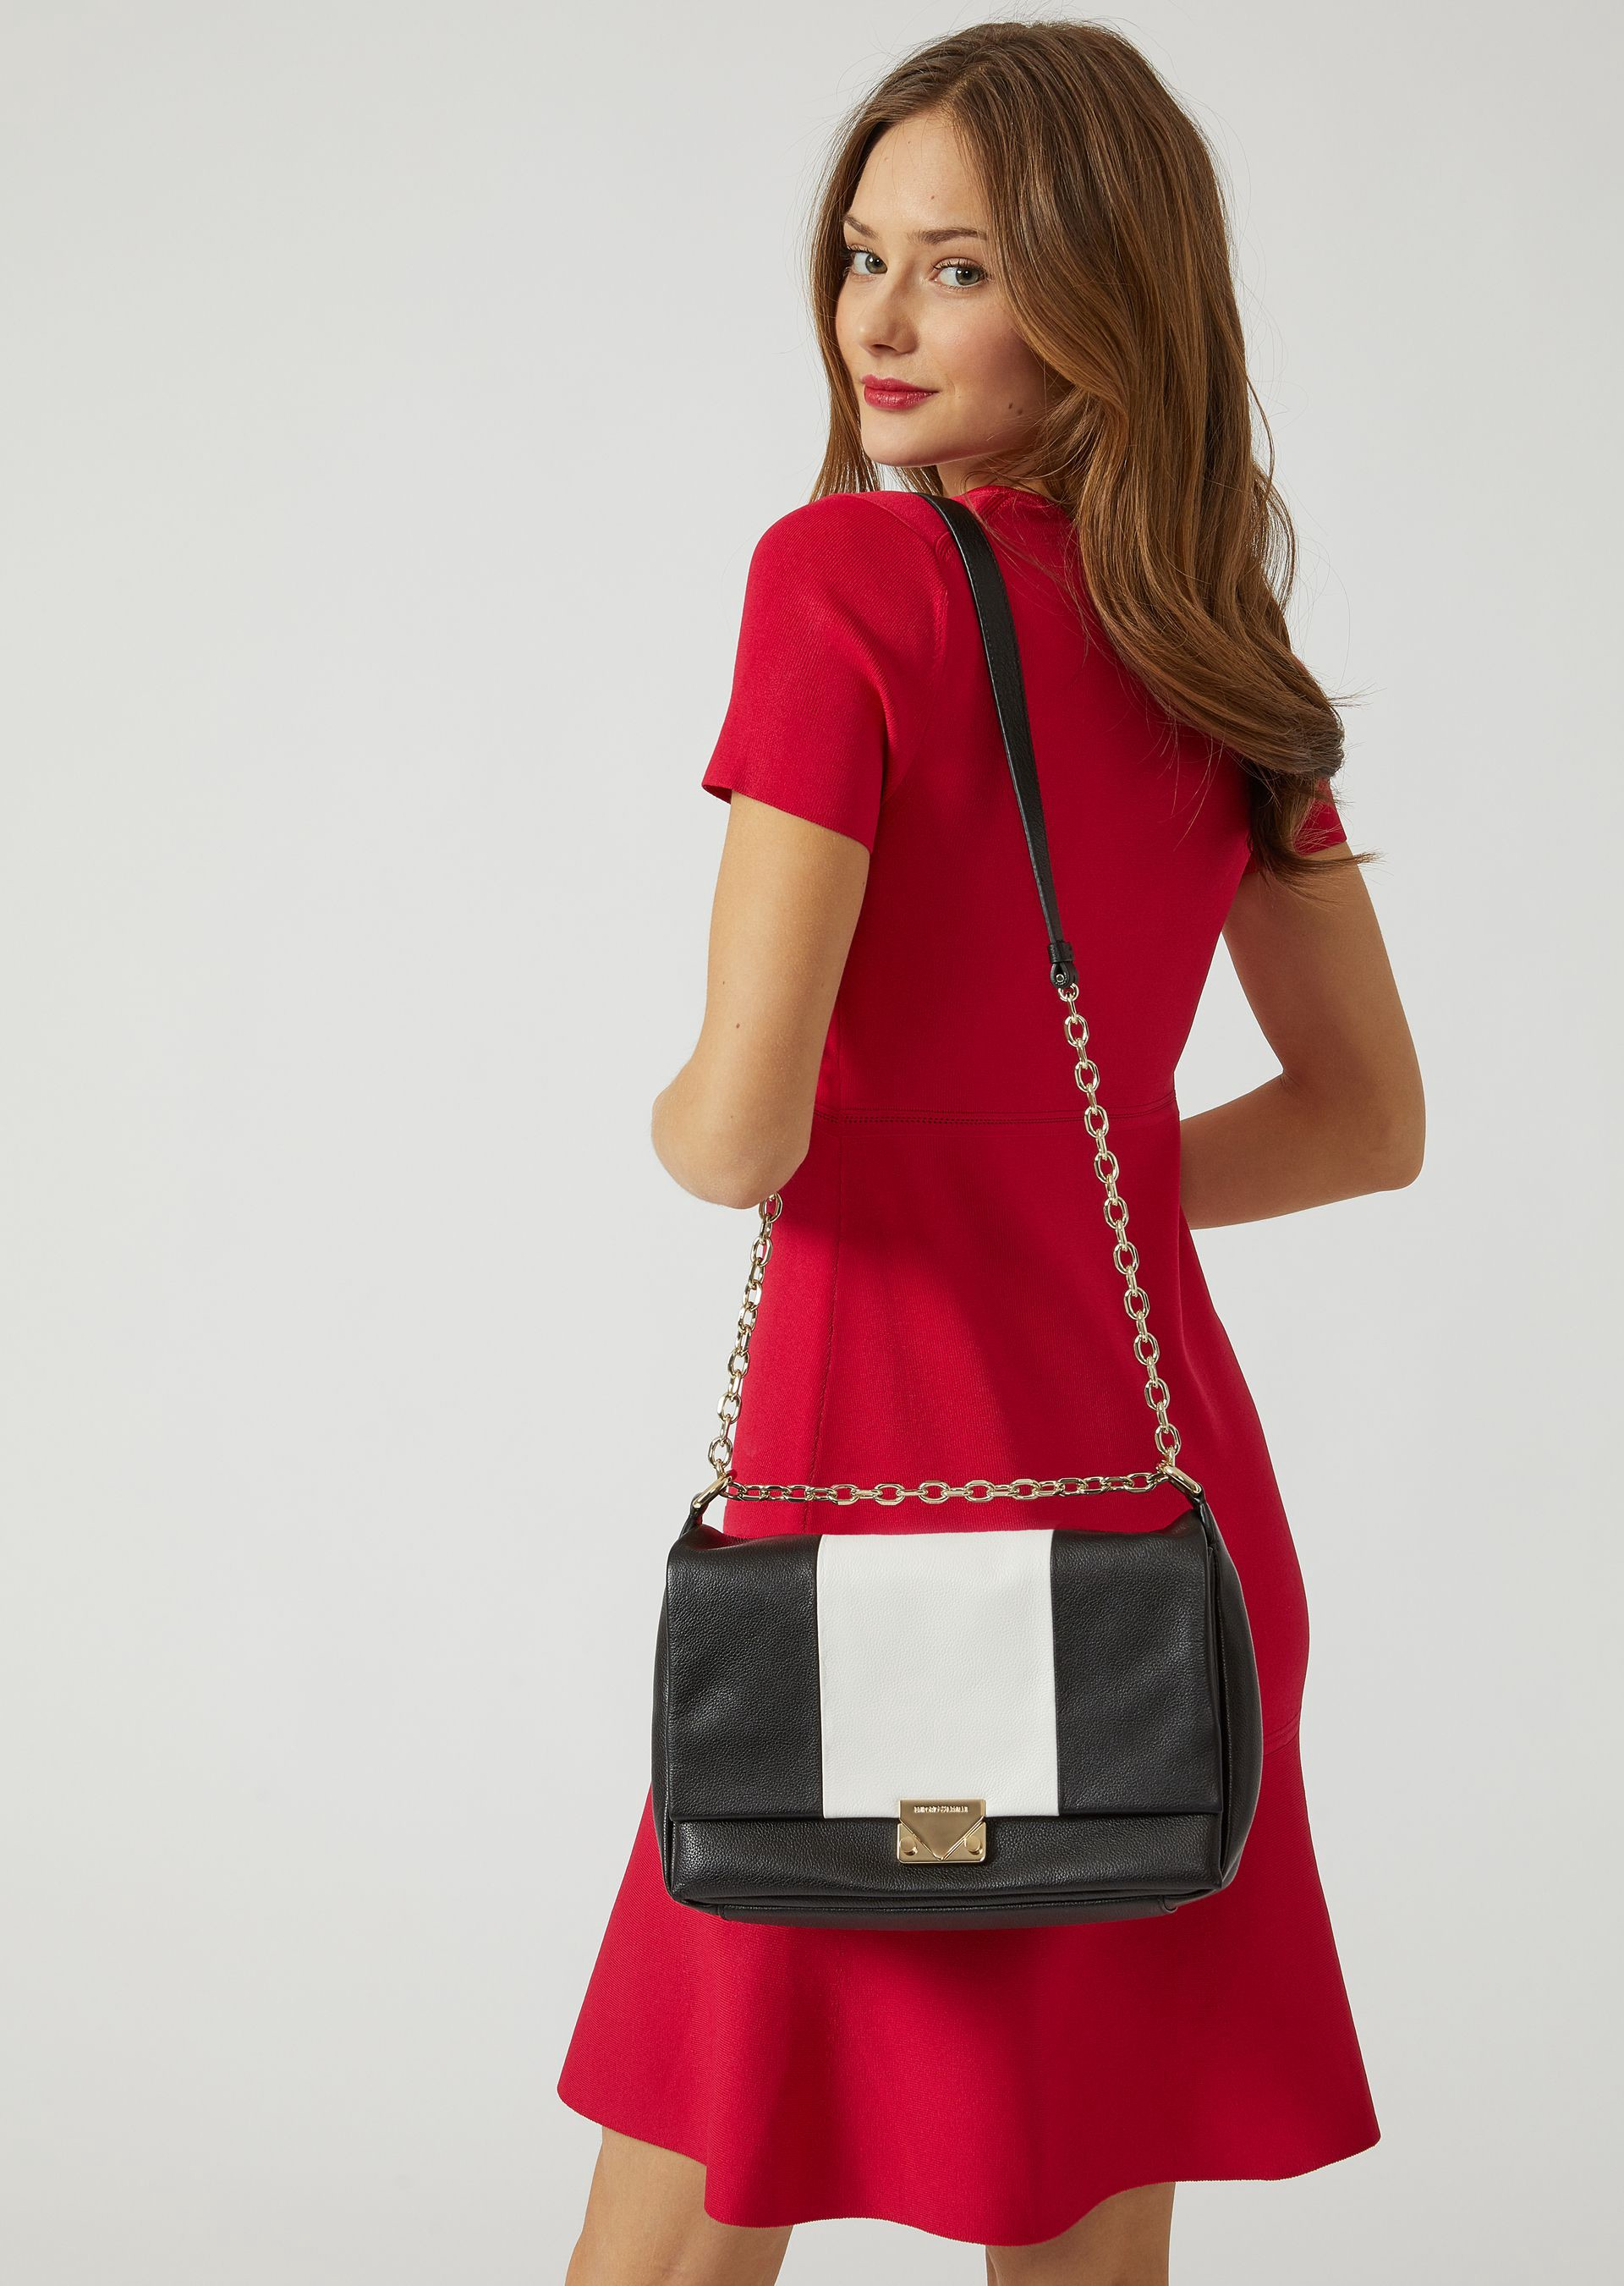 CROSS BODY BAG IN TWO-COLOUR LEATHER by Emporio Armani 9ba07899b8